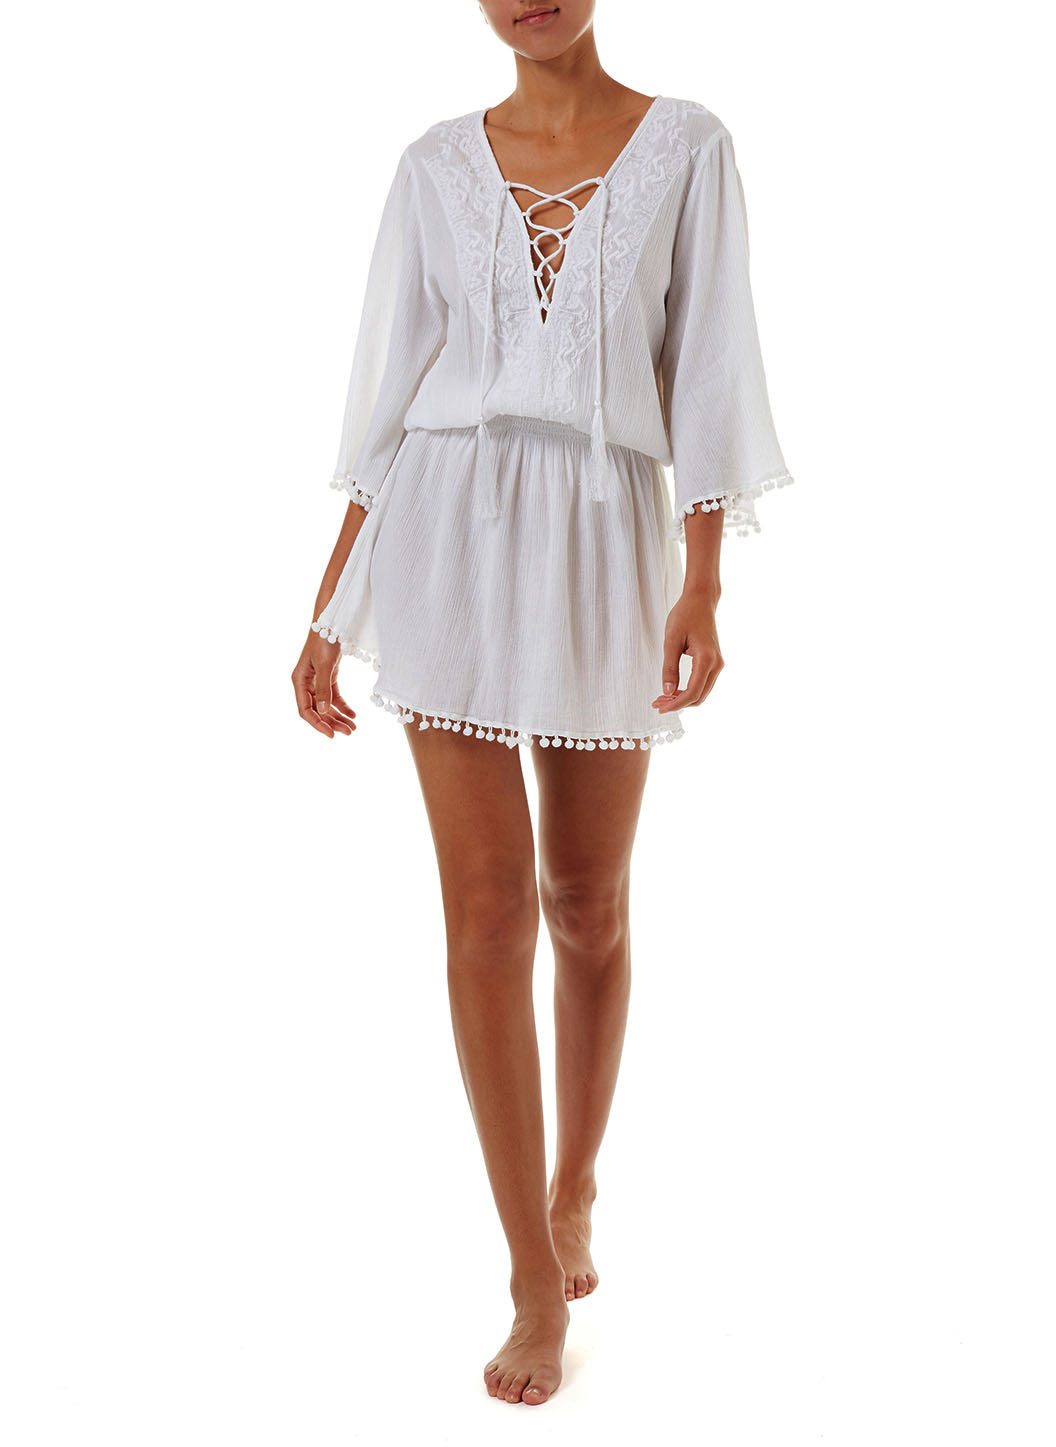 Kiah White Lace-Up Embroidered Short Dress